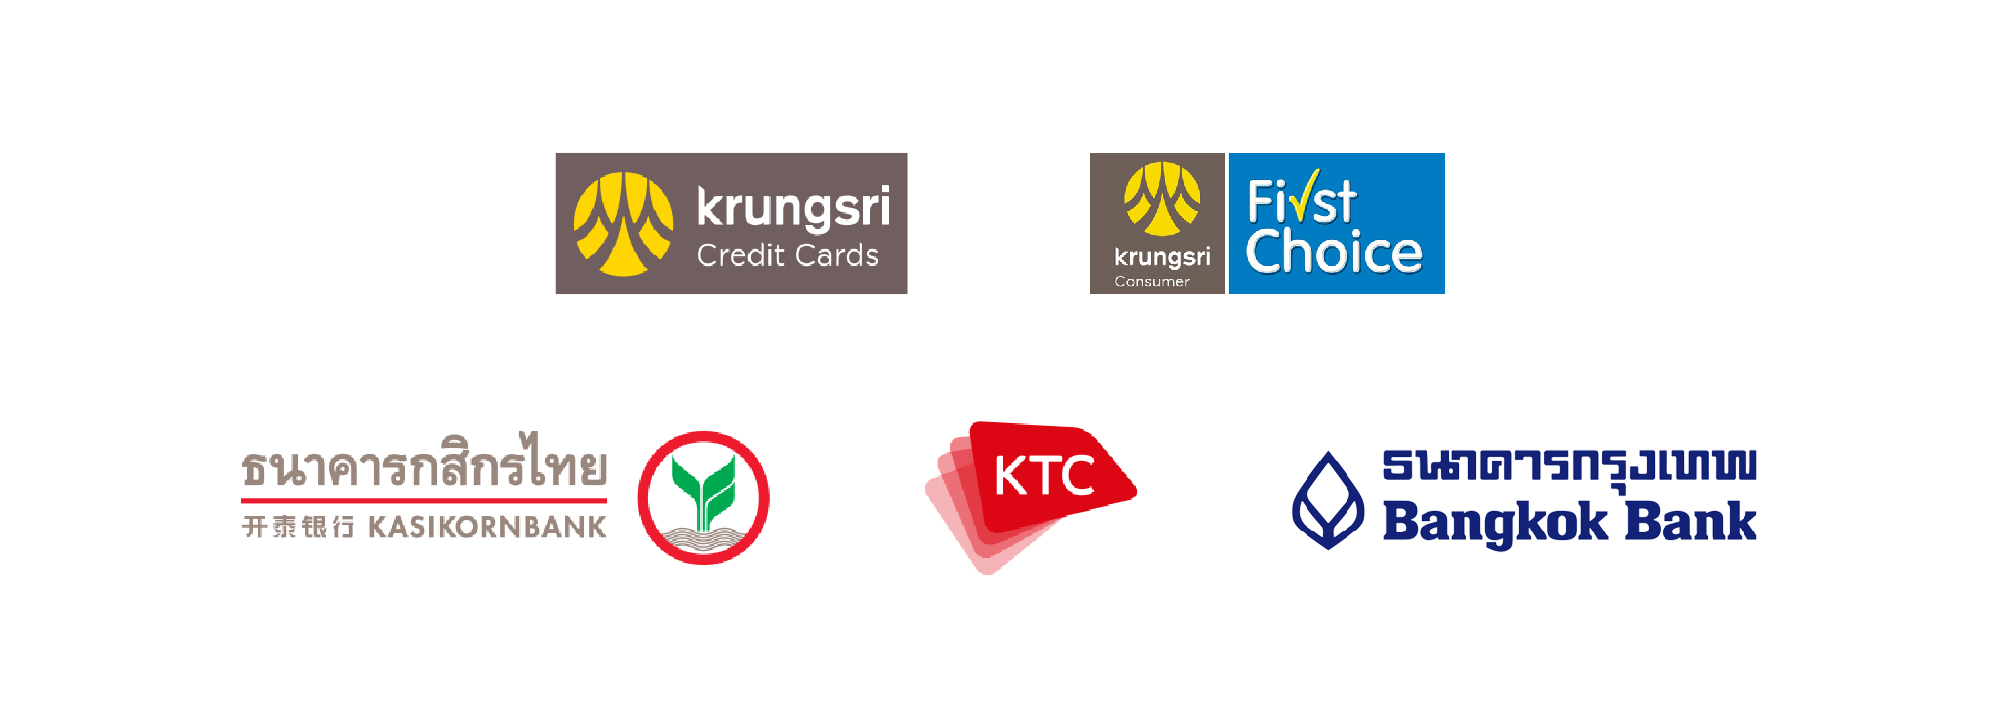 Support card brands